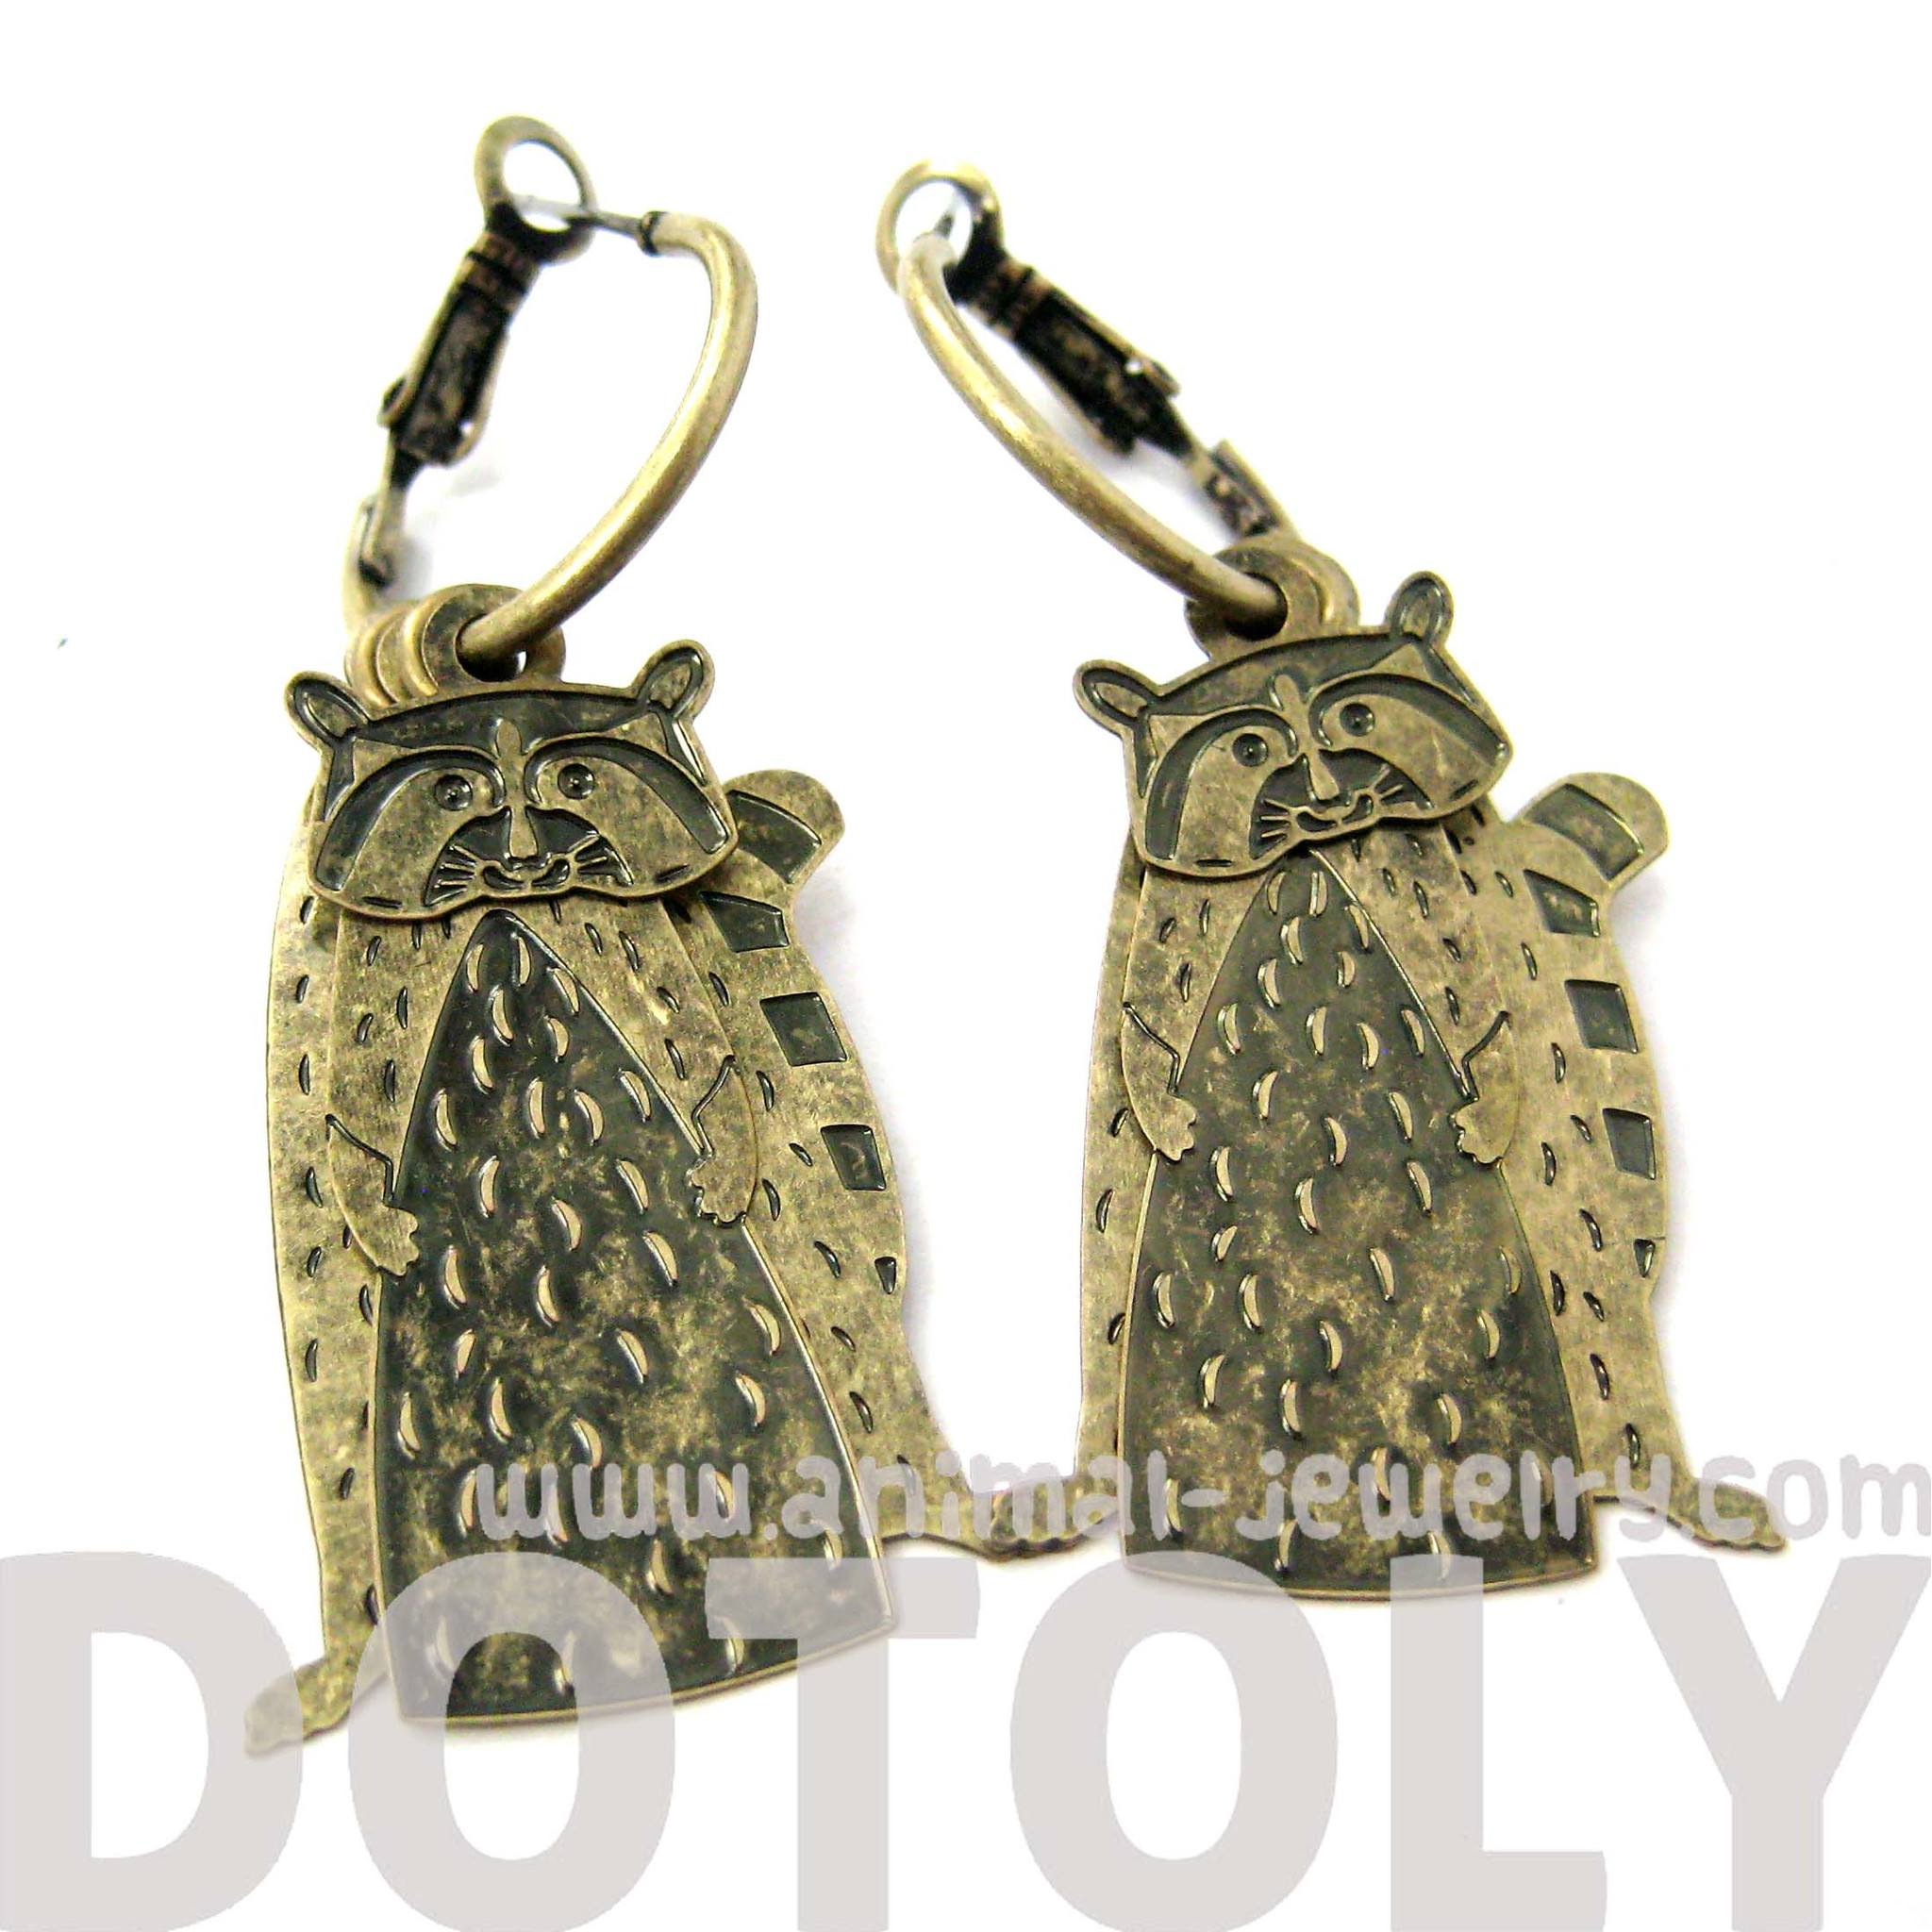 unique-3d-racoon-shaped-dangle-earrings-in-brass-animal-jewelry